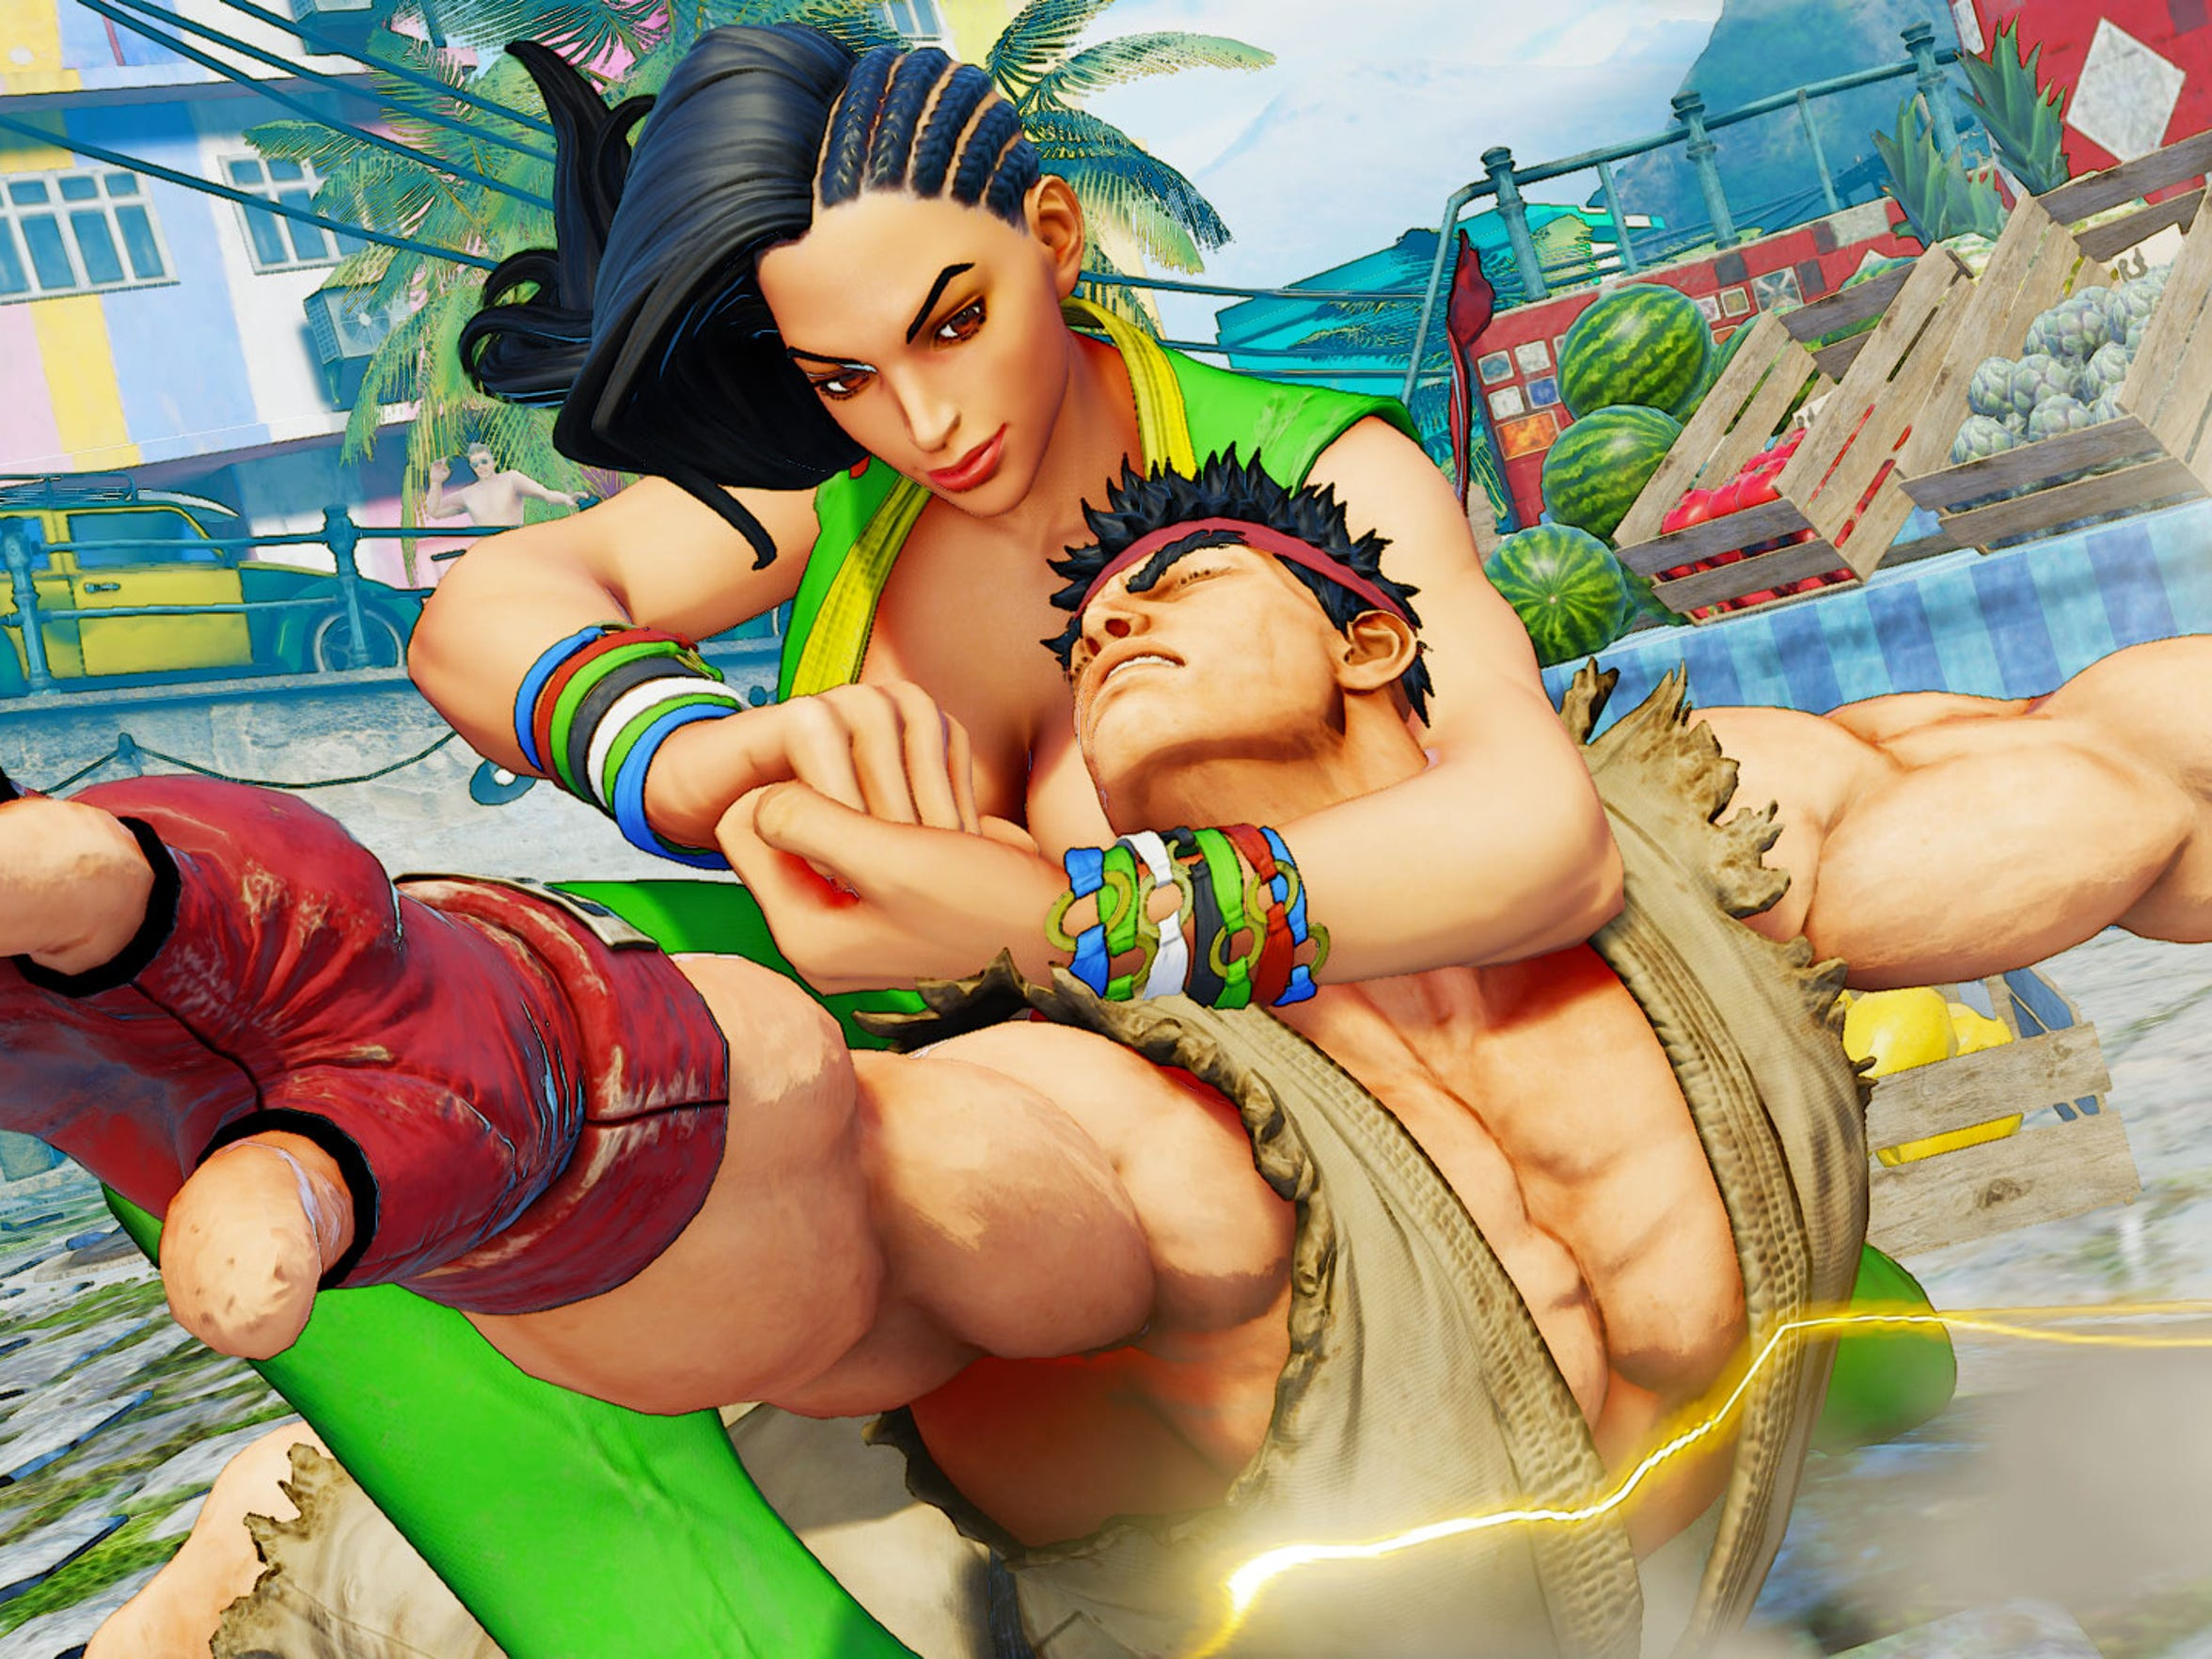 Street Fighter V also adds new characters such as Sean's